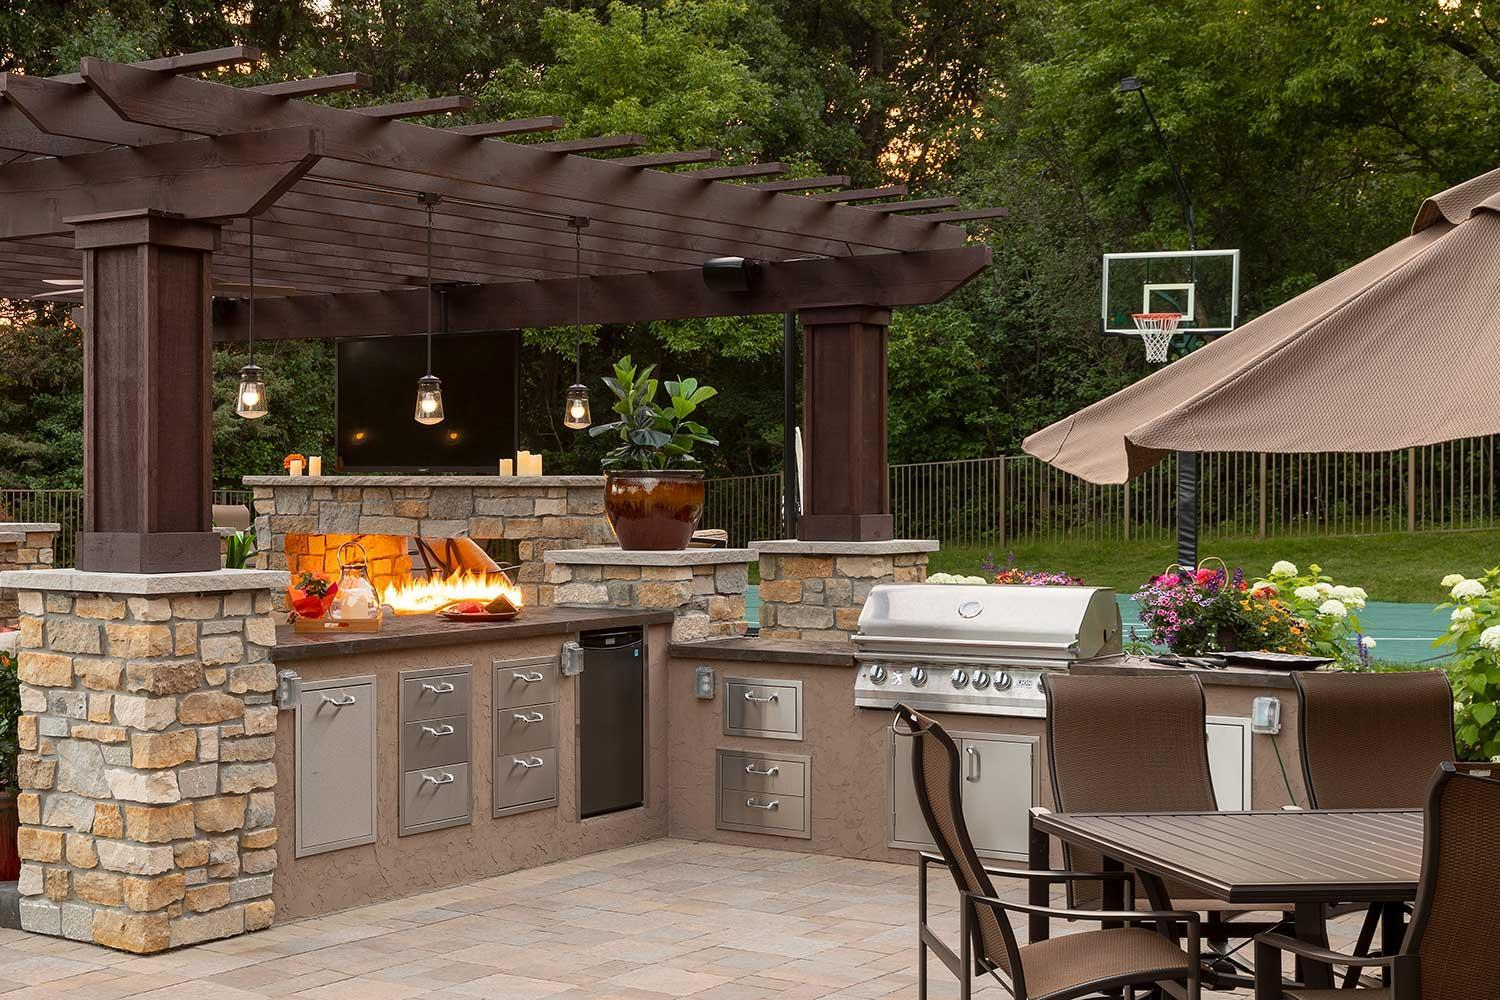 Outdoor kitchen and dining patio in a resort style backyard.